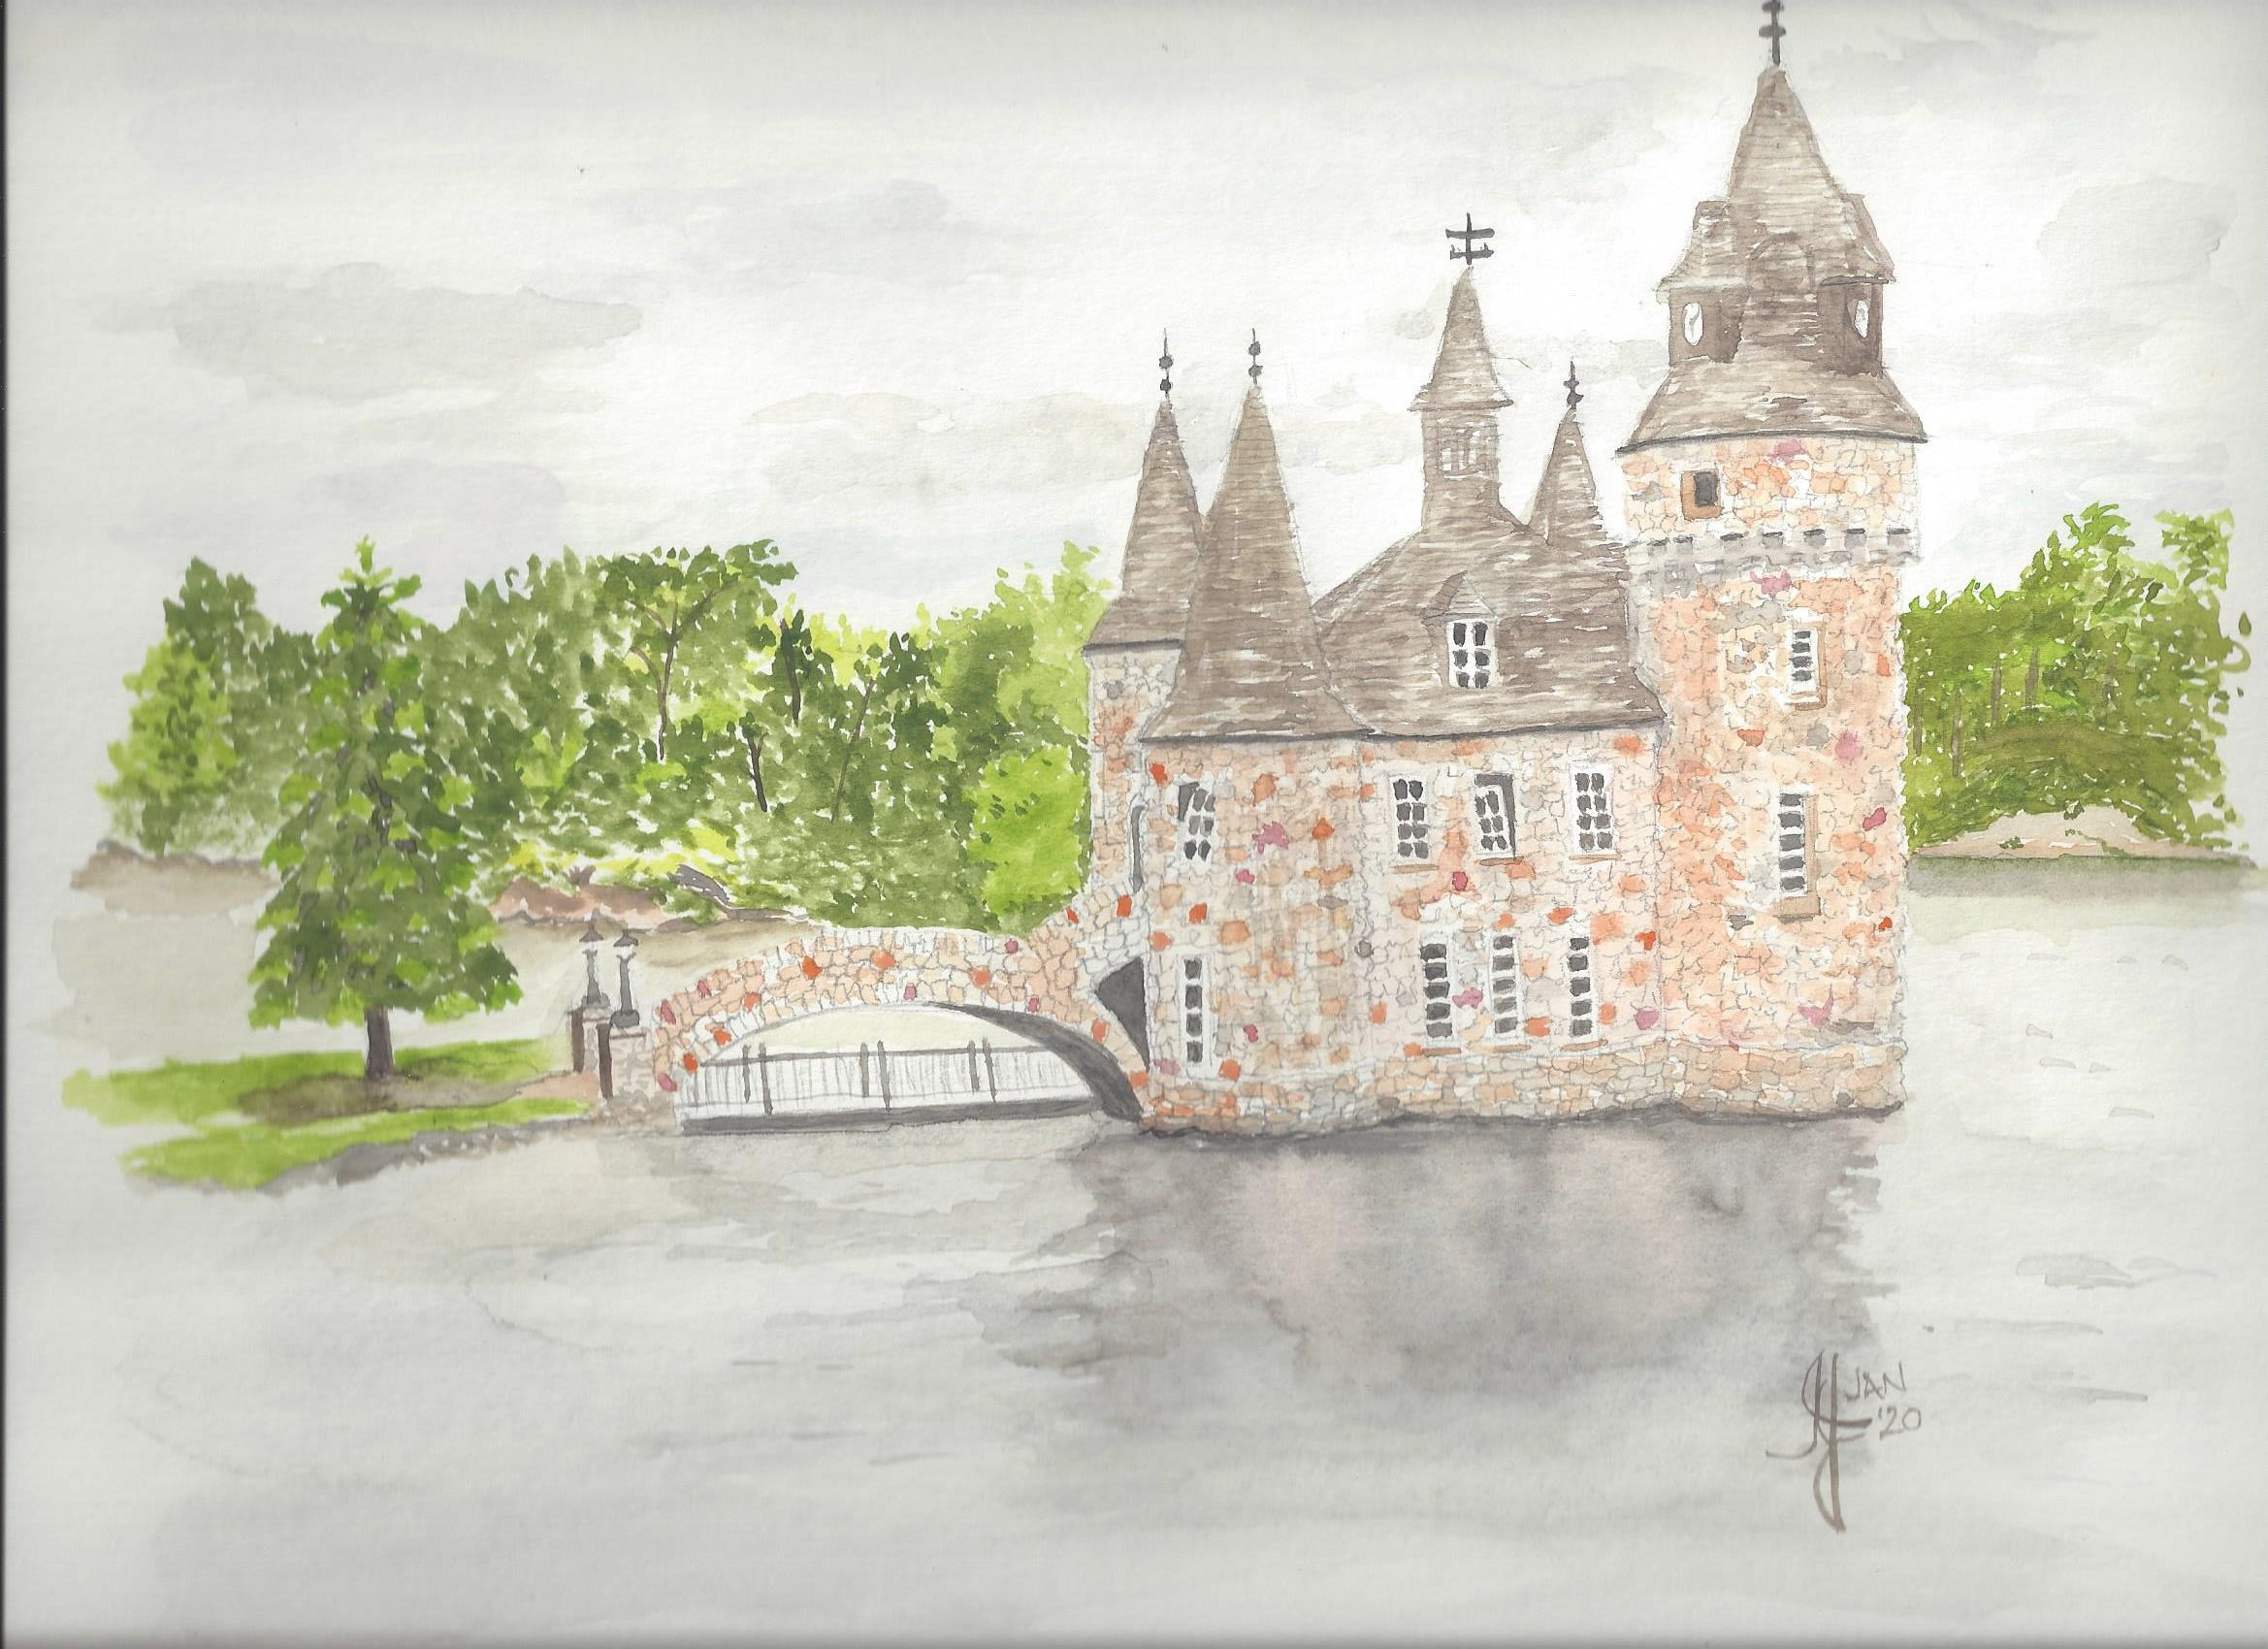 A watercolour of Boldt Castle in New York